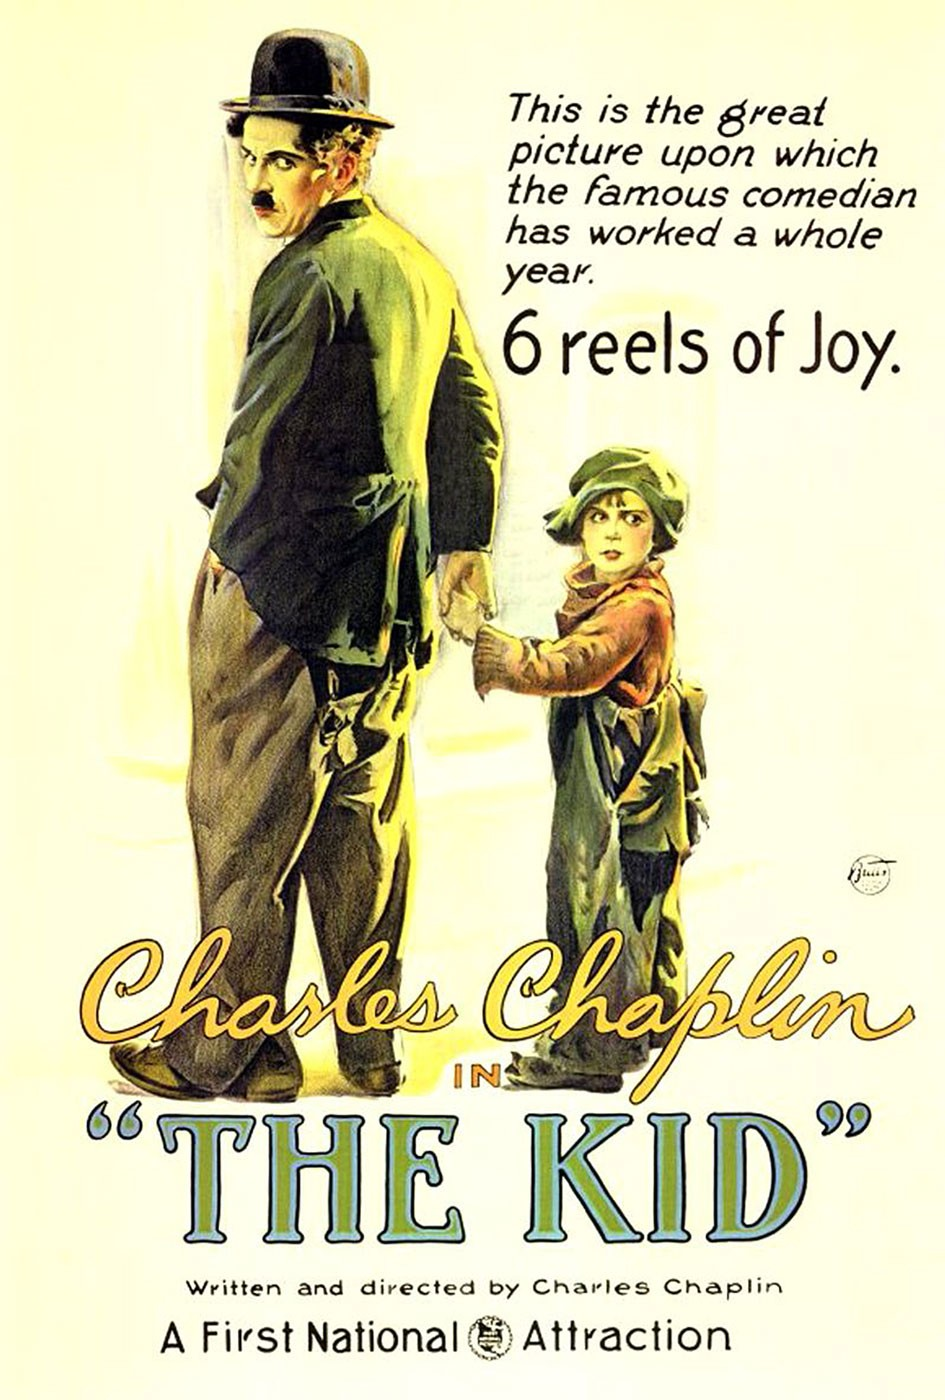 Película - The Kid - Charles Chaplin